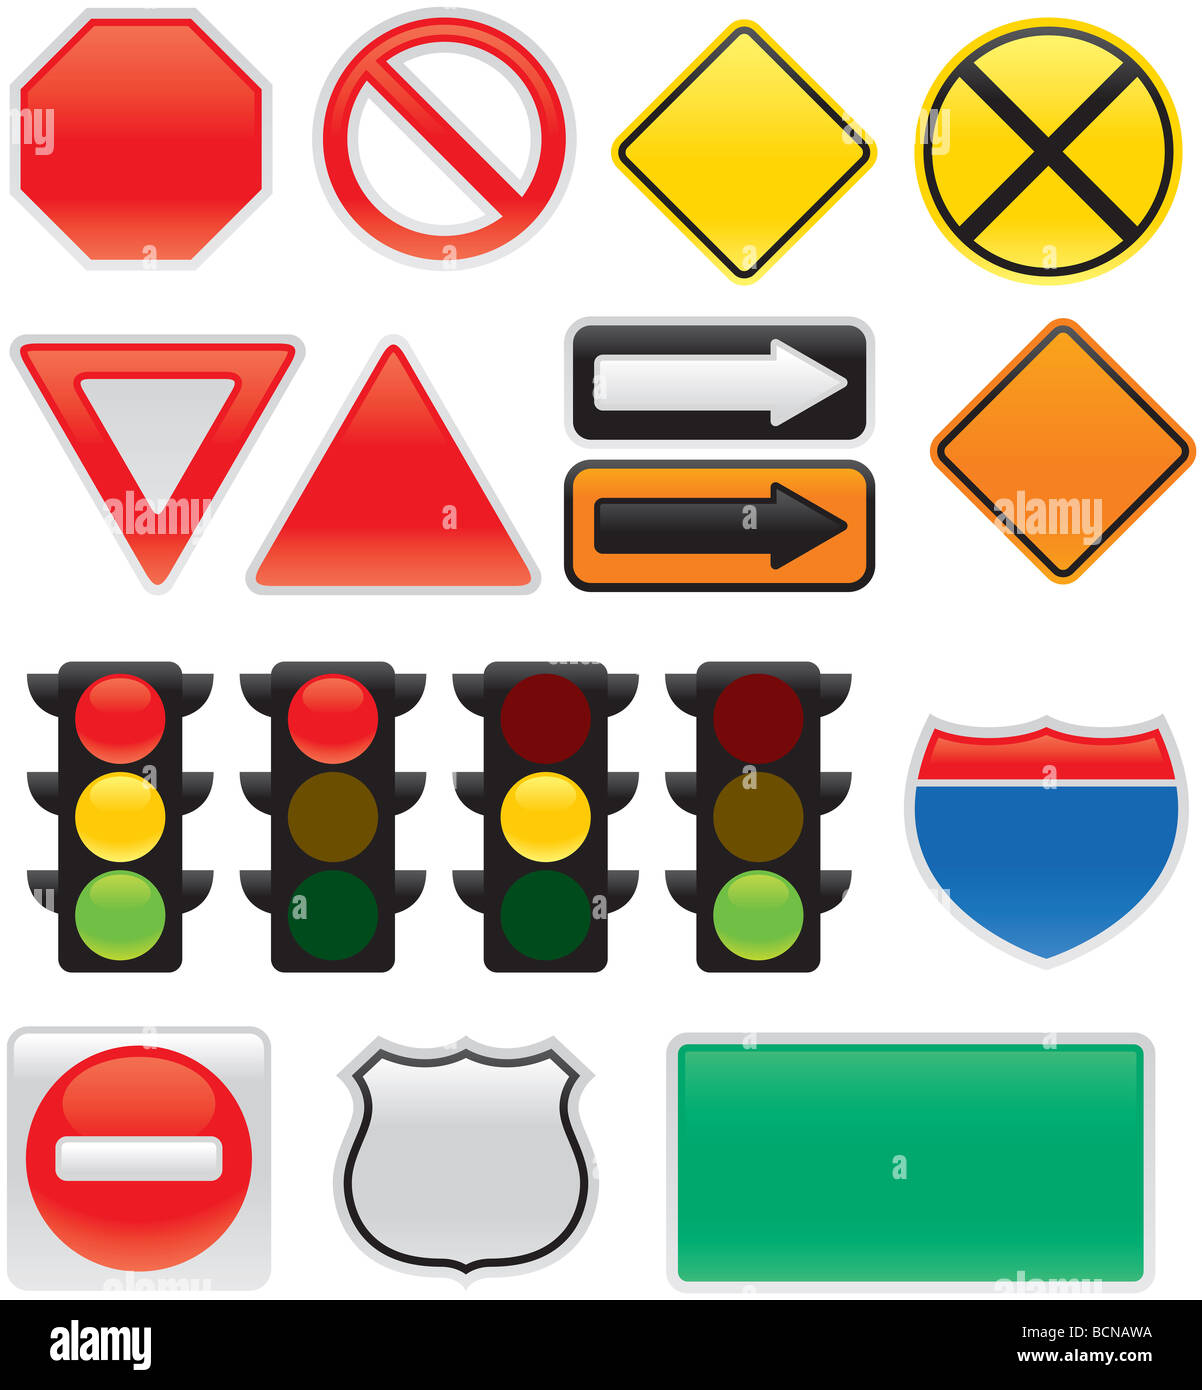 A Collection Of Vector Traffic Signs And Map Symbols Stop Yield